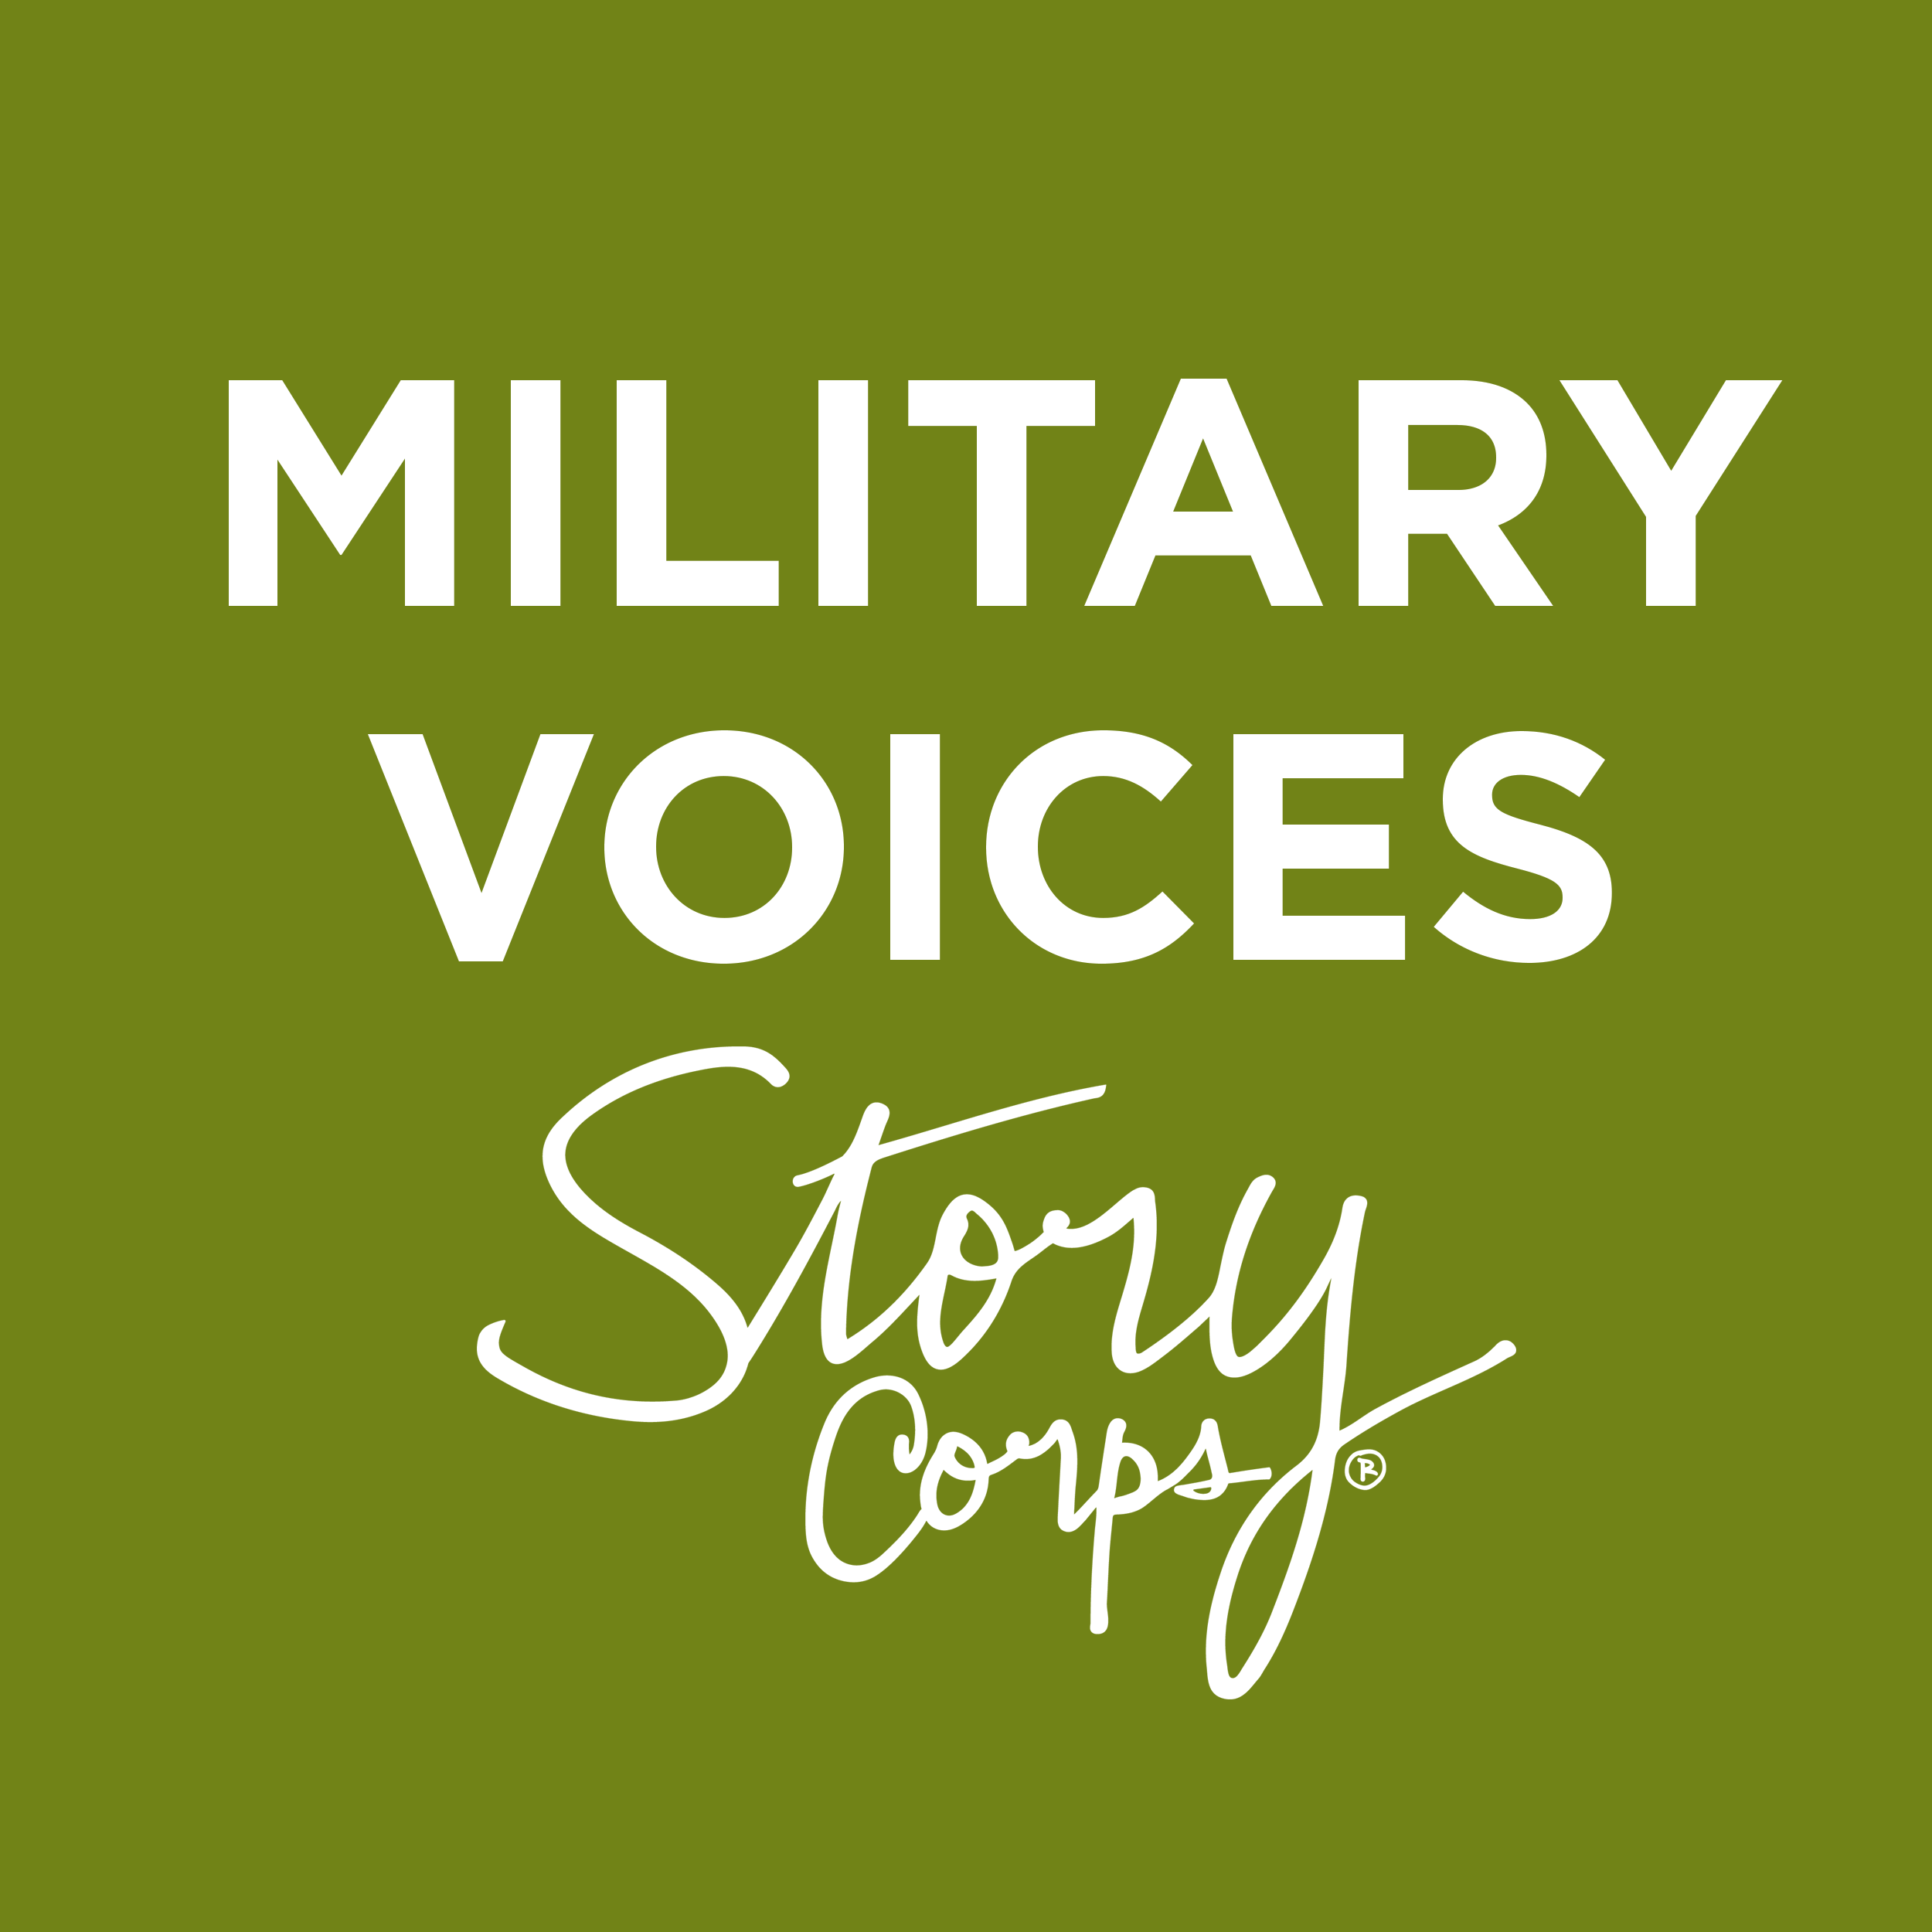 Military Voices Initiative